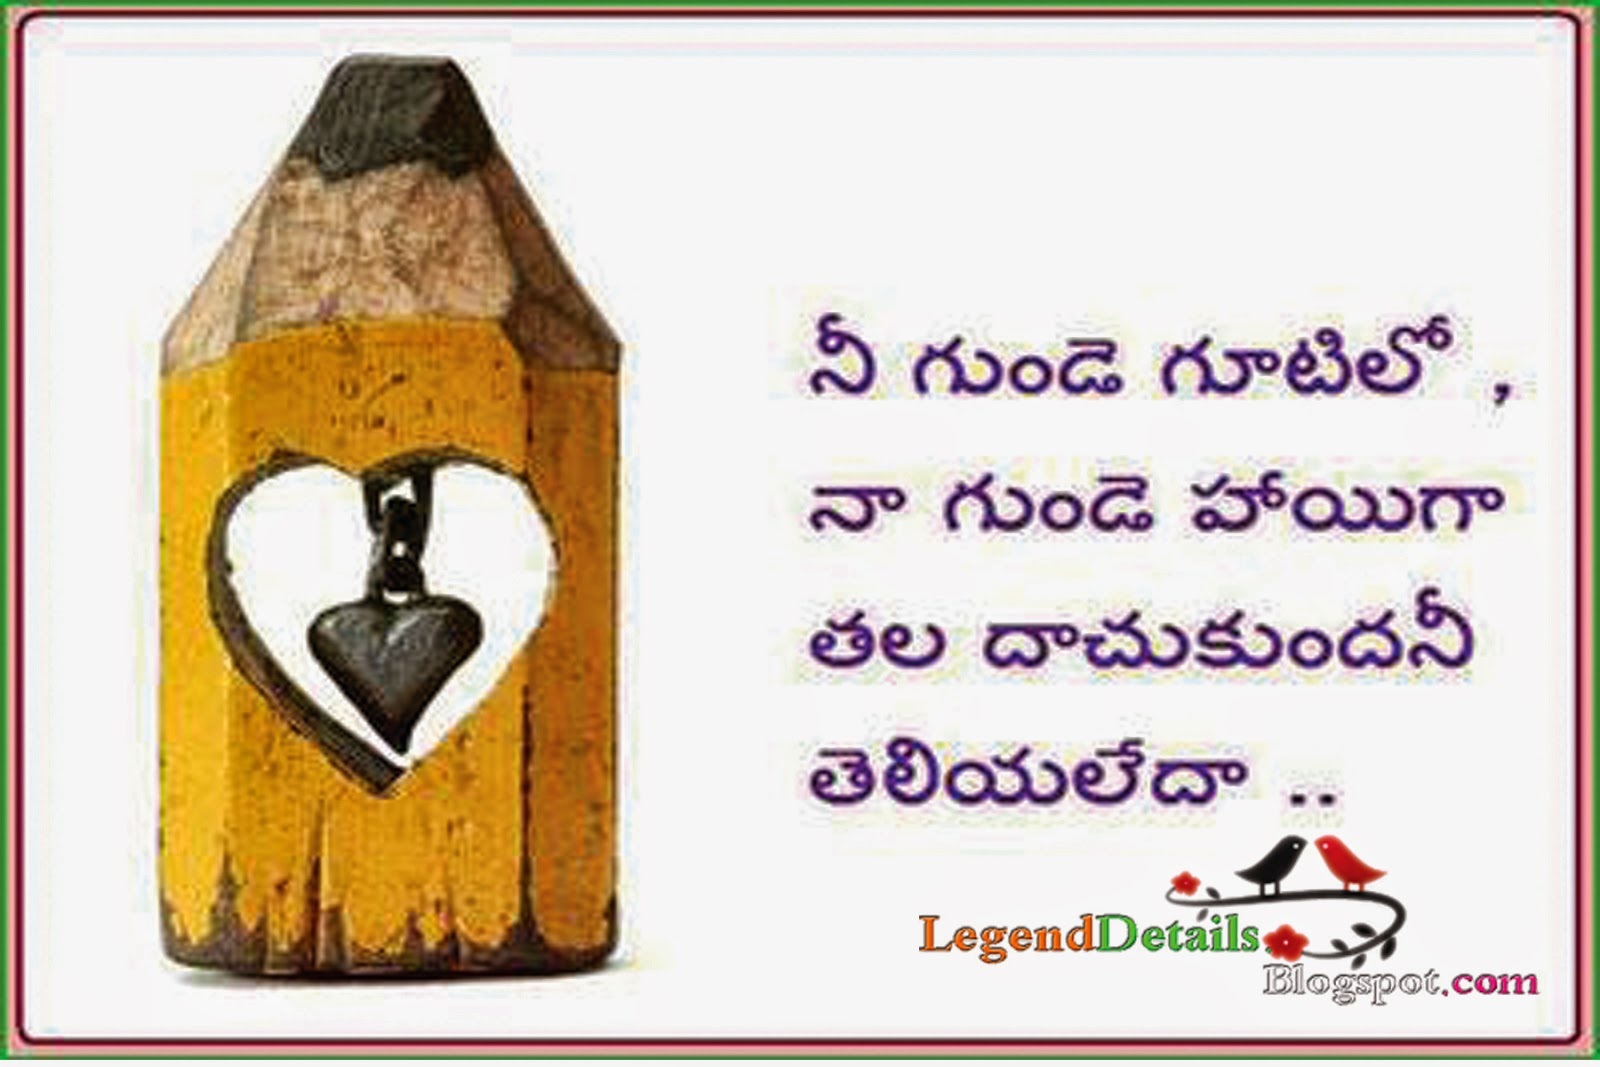 Telugu Love Quotes Custom Famous New Telugu Love Quotes  Hd Wallpapers  Legendary Quotes